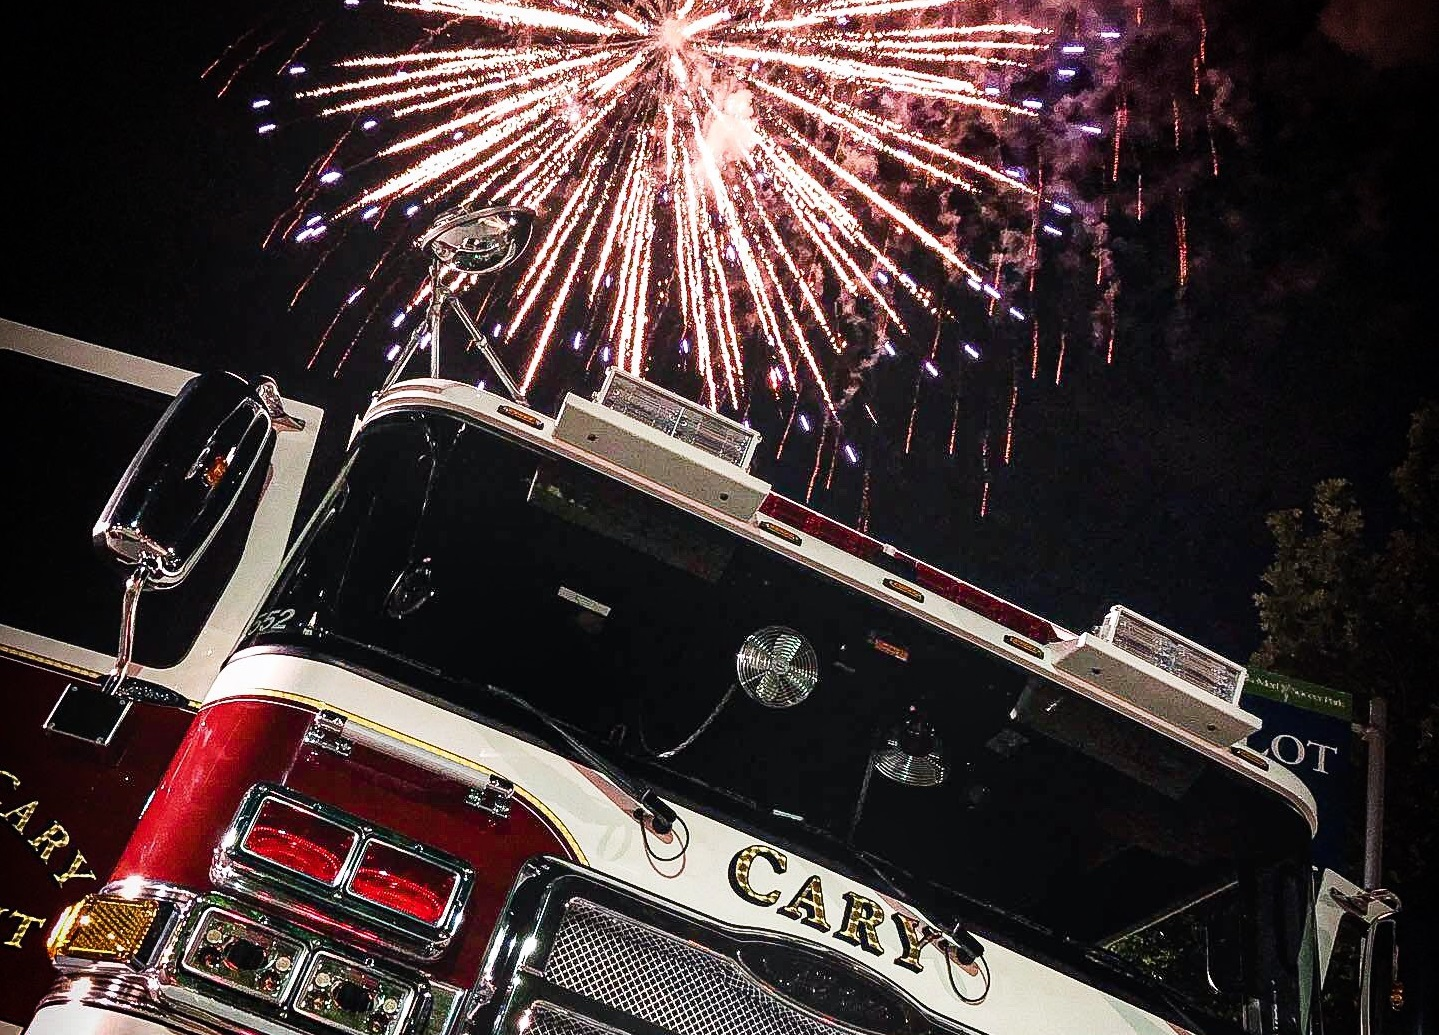 Firetruck with fireworks exploding overhead